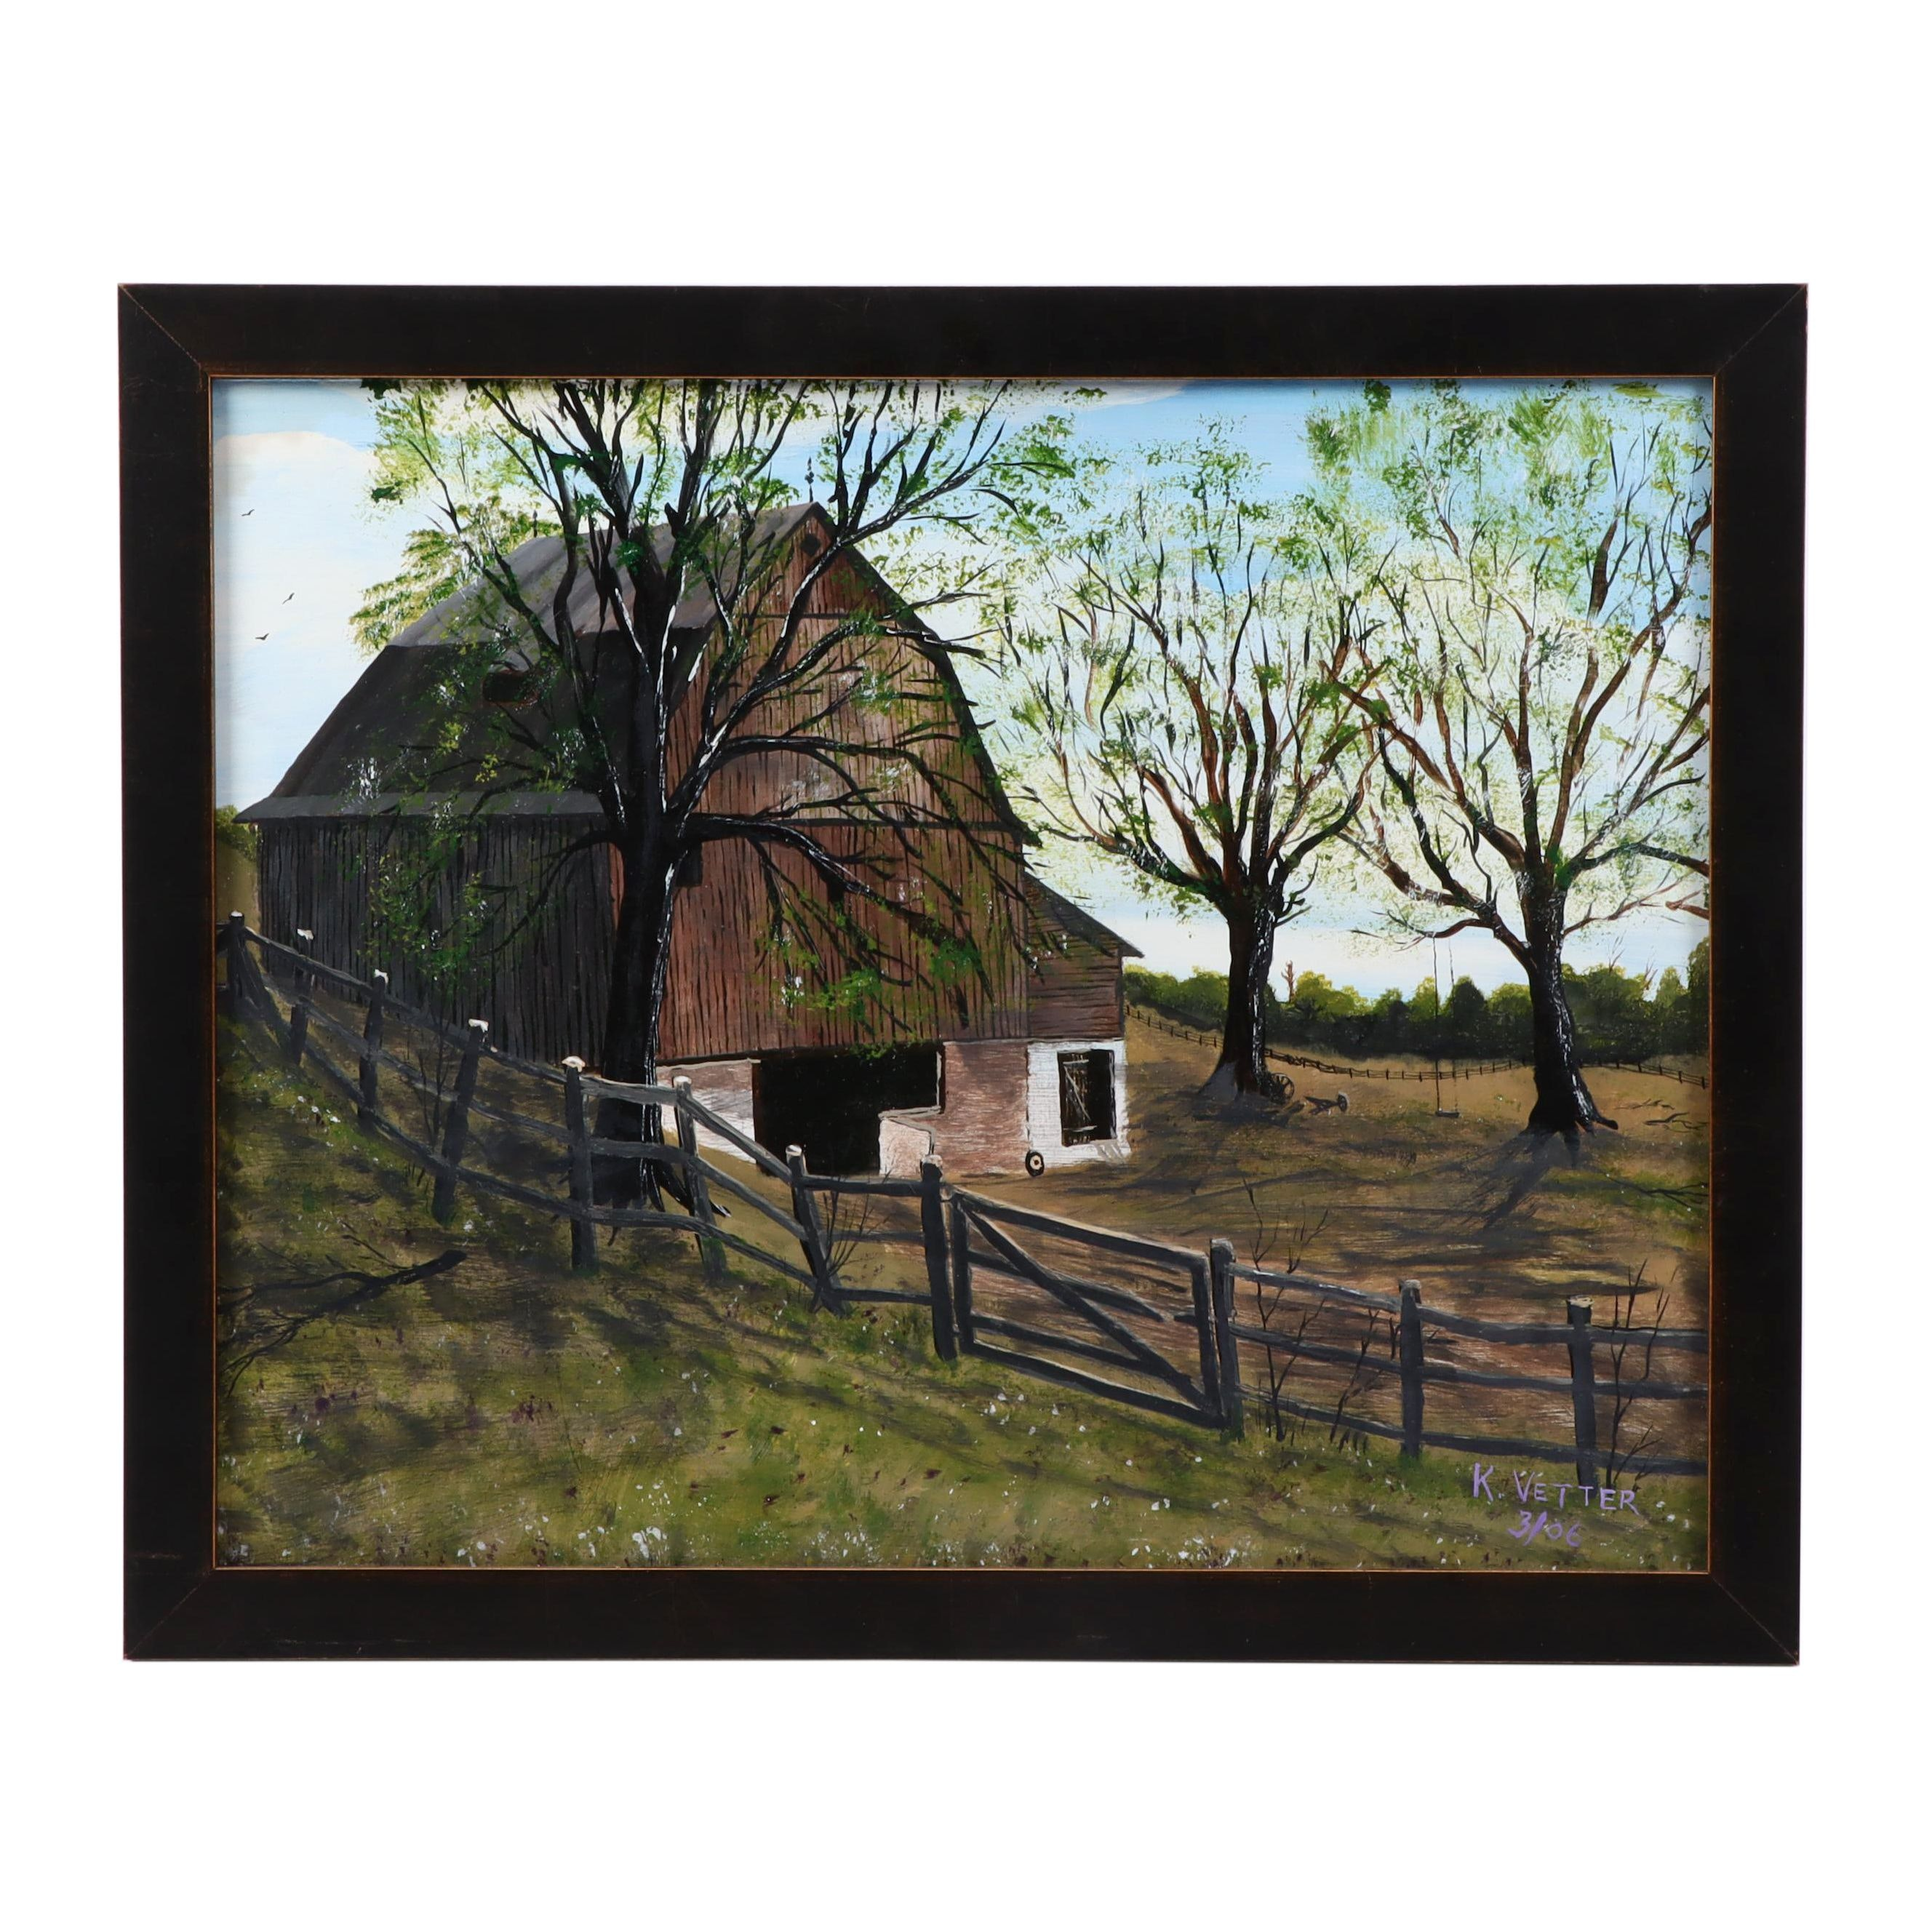 Acrylic Painting of Barn in Landscape